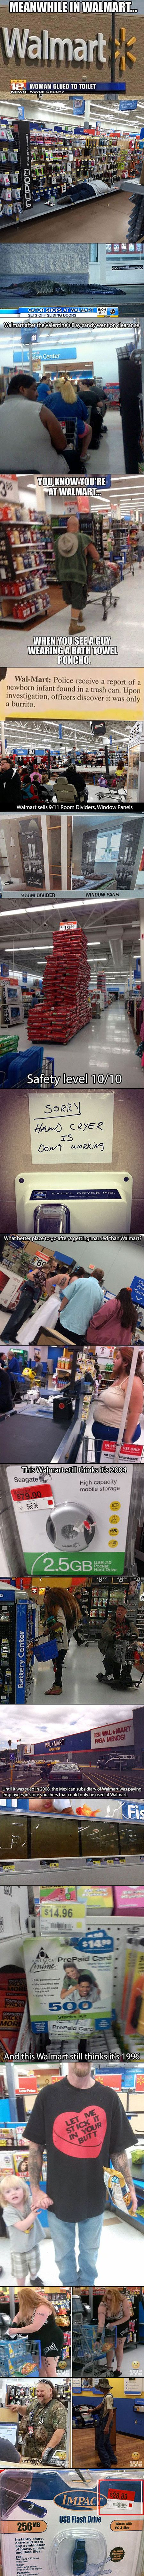 Walmart is great for deals and apparently, spotting strange people as well as random things.